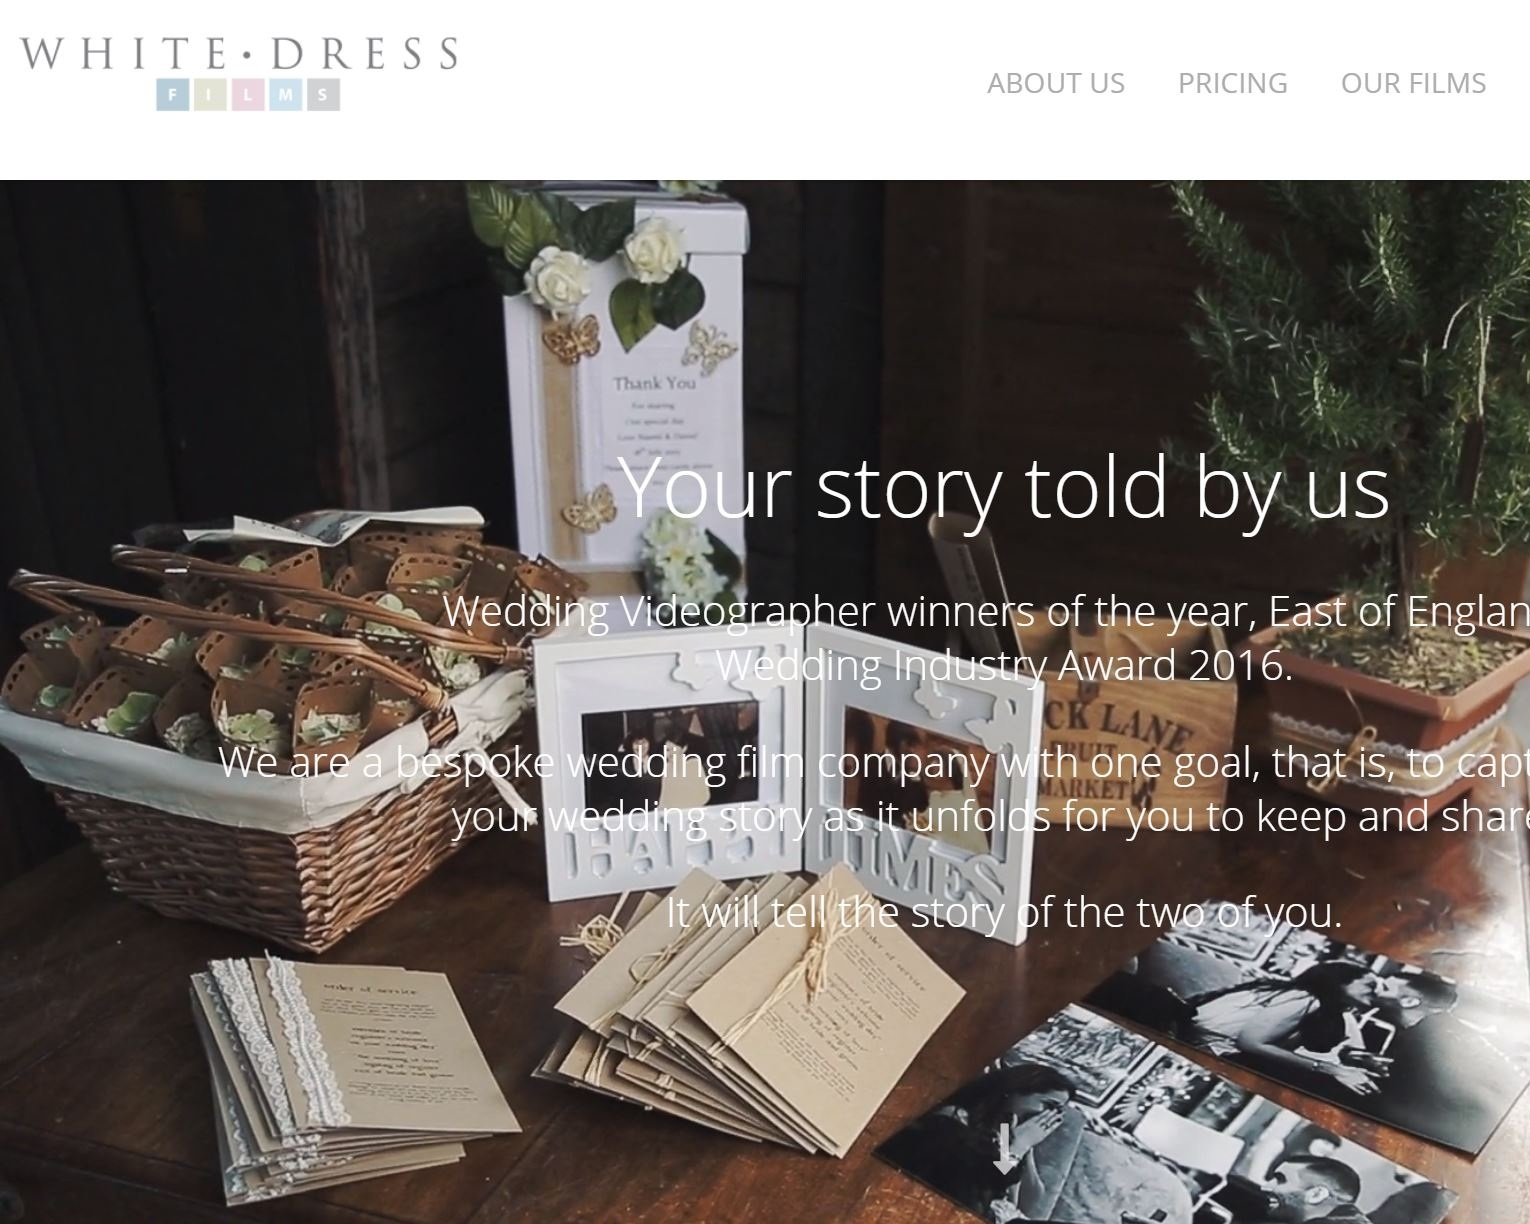 White Dress Films - Wedding Videographer winners of the year, East of England, Wedding Industry Award 2016. Bespoke wedding film company with one goal, that is, to capture and retell your wedding story as it unfolds for you to keep and share.